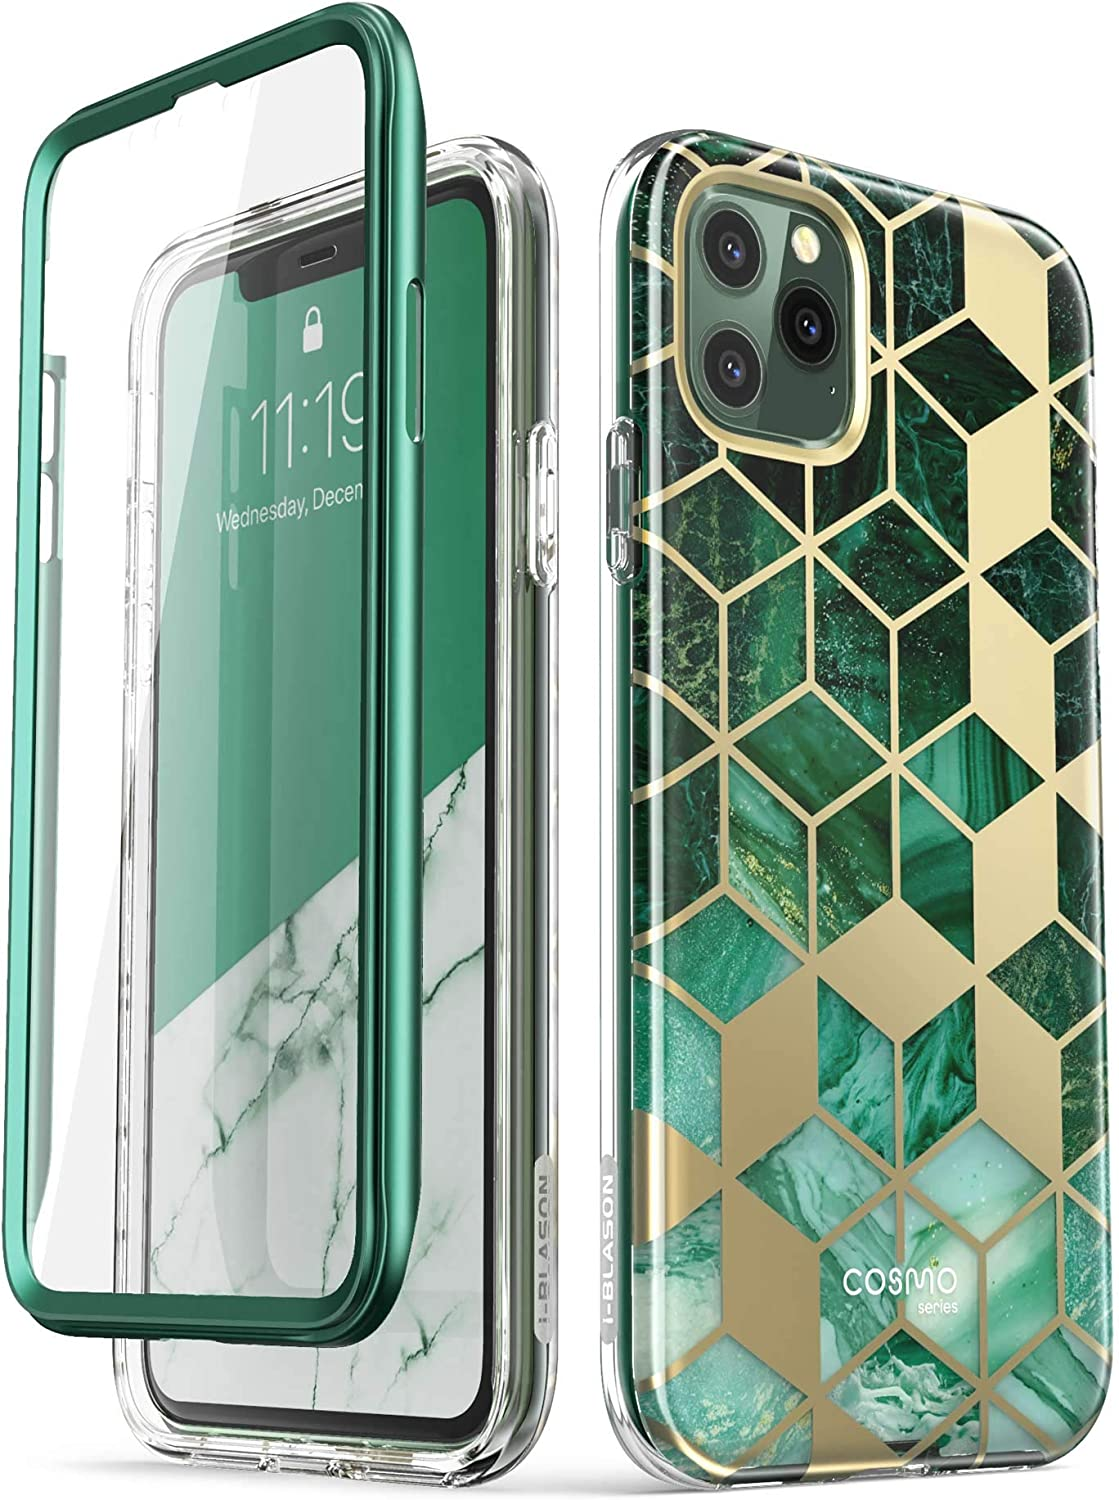 i-Blason Cosmo Series Case for iPhone 11 Pro Max 2019 Release, Slim Full-Body Stylish Protective Case with Built-in Screen Protector (Green)